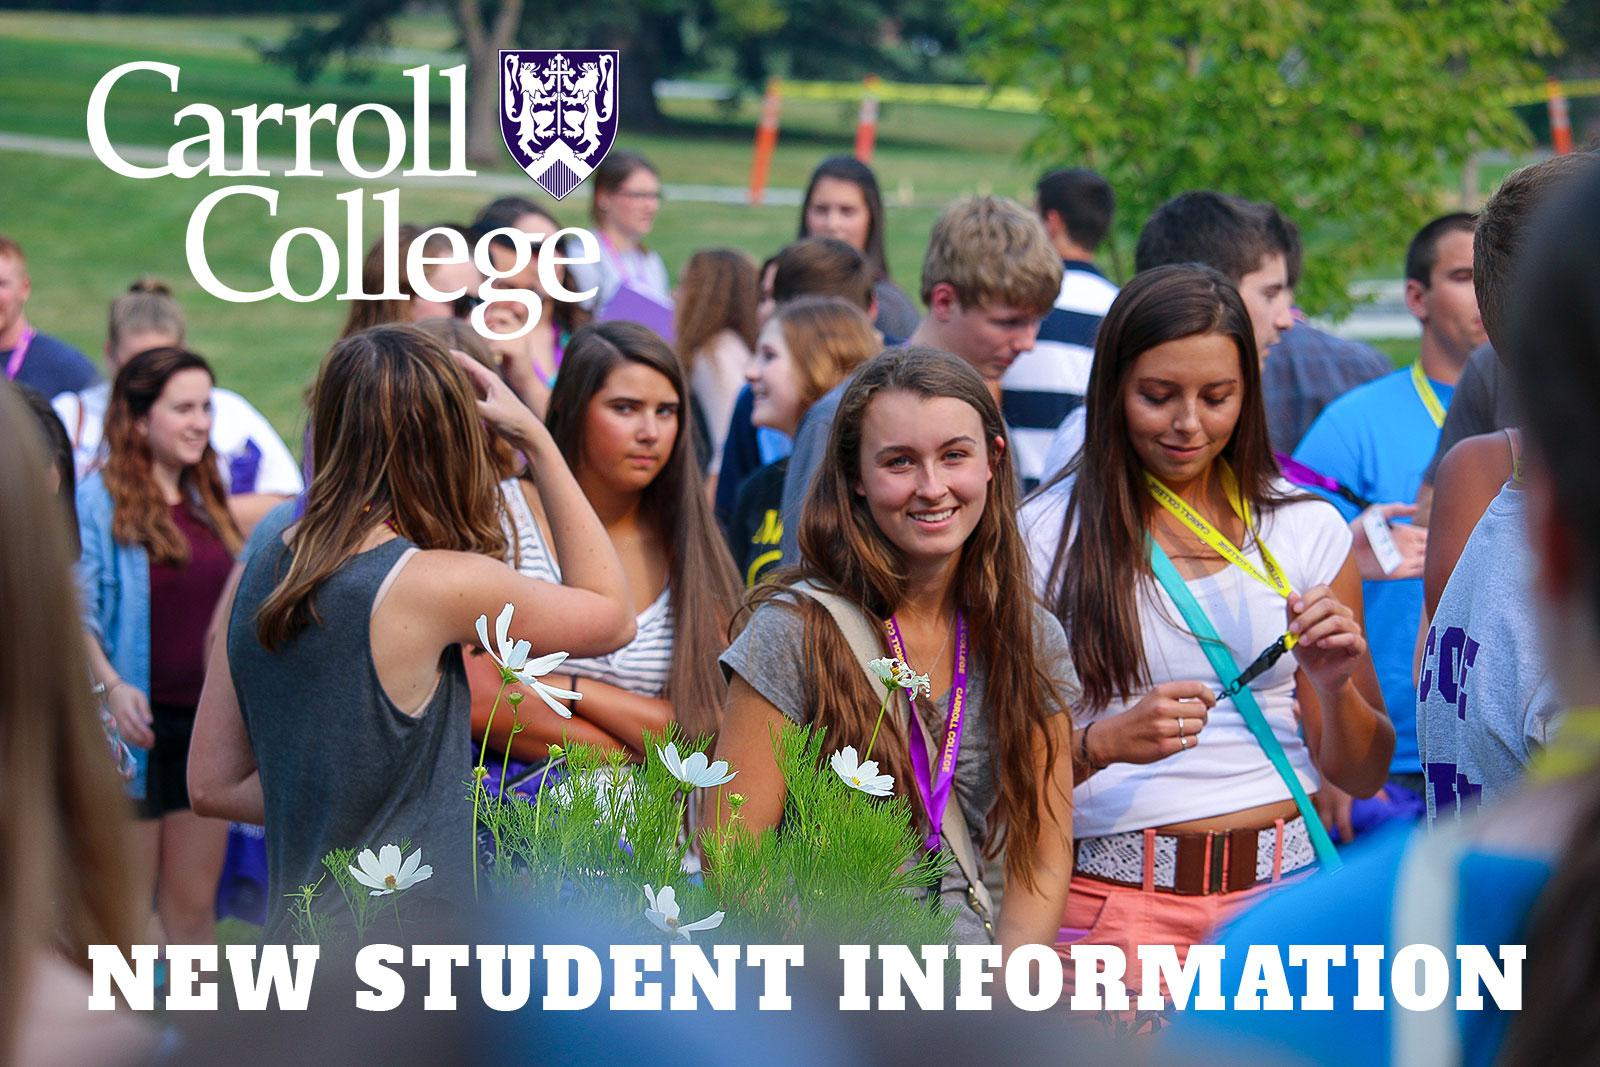 We welcome new students to campus!